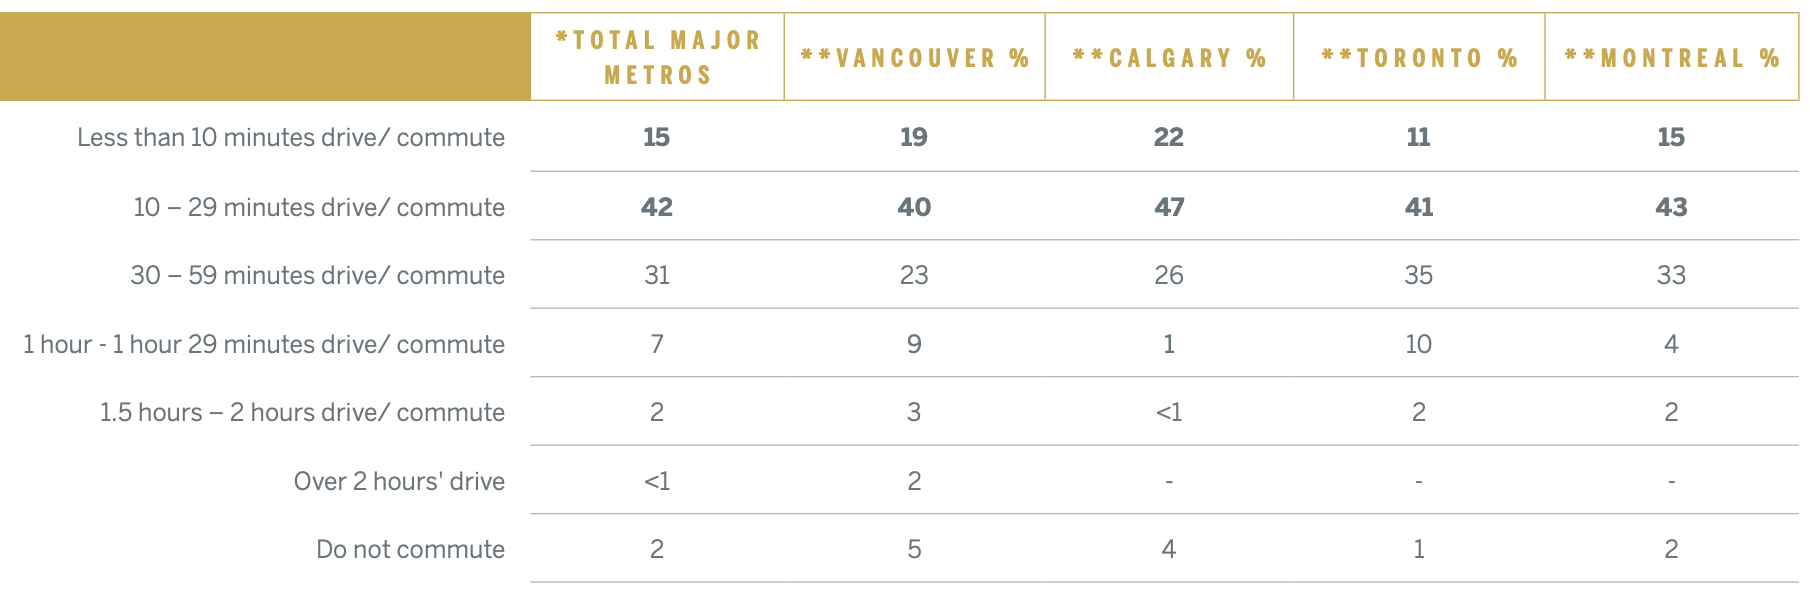 Canada Neighbourhoods In Transit 2019 Report